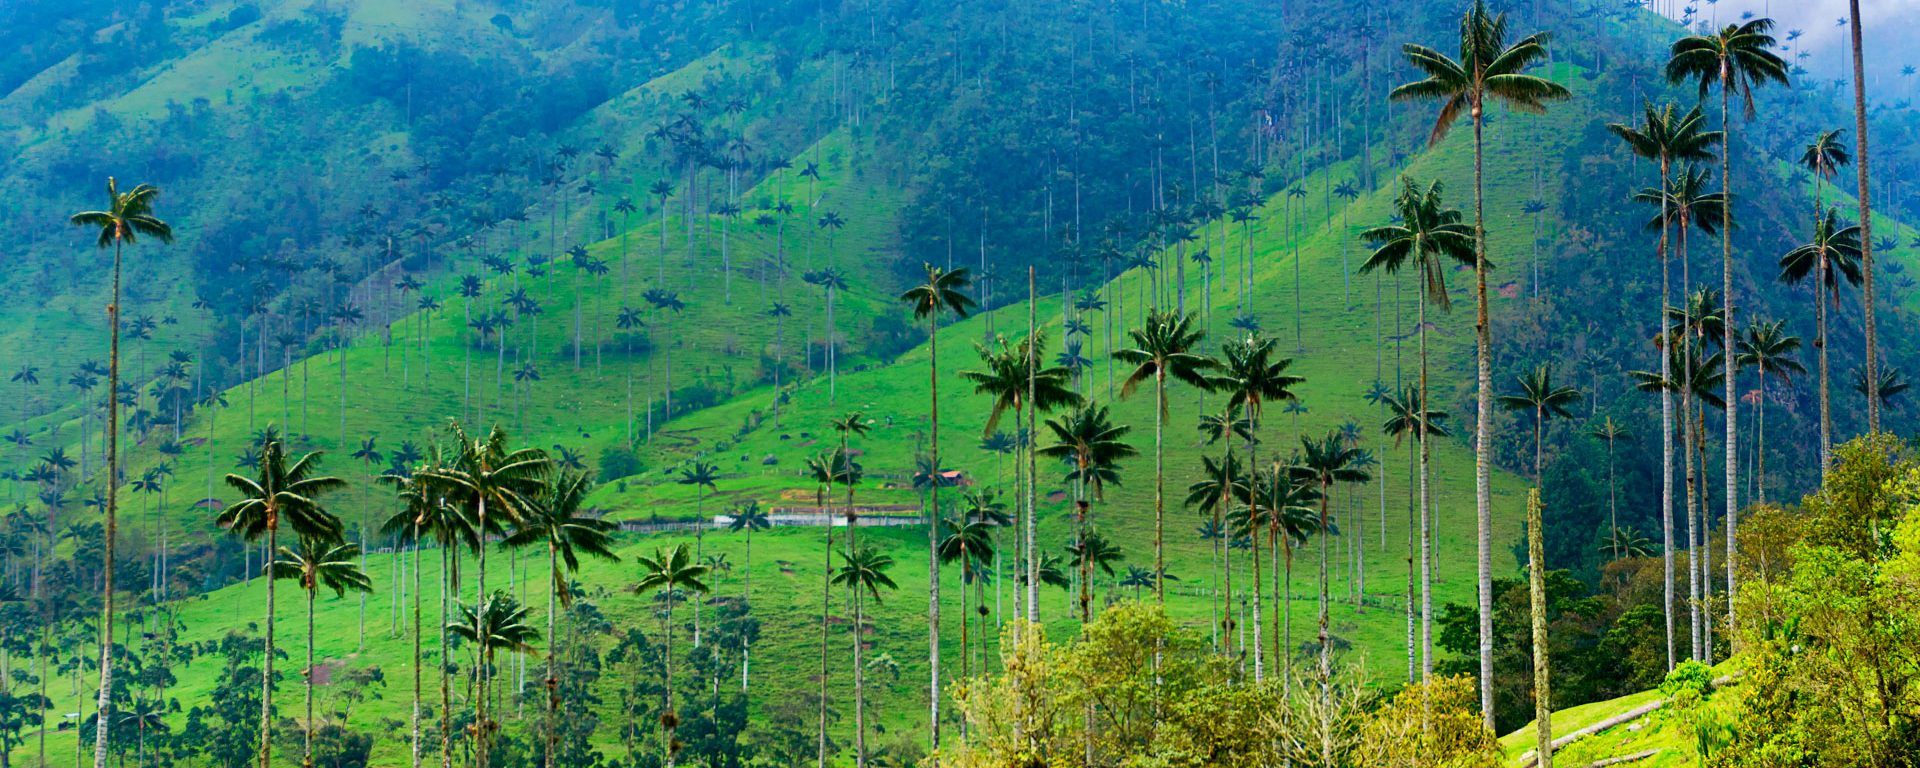 Landscape of wax palm trees in Cocora Valley, Colombia